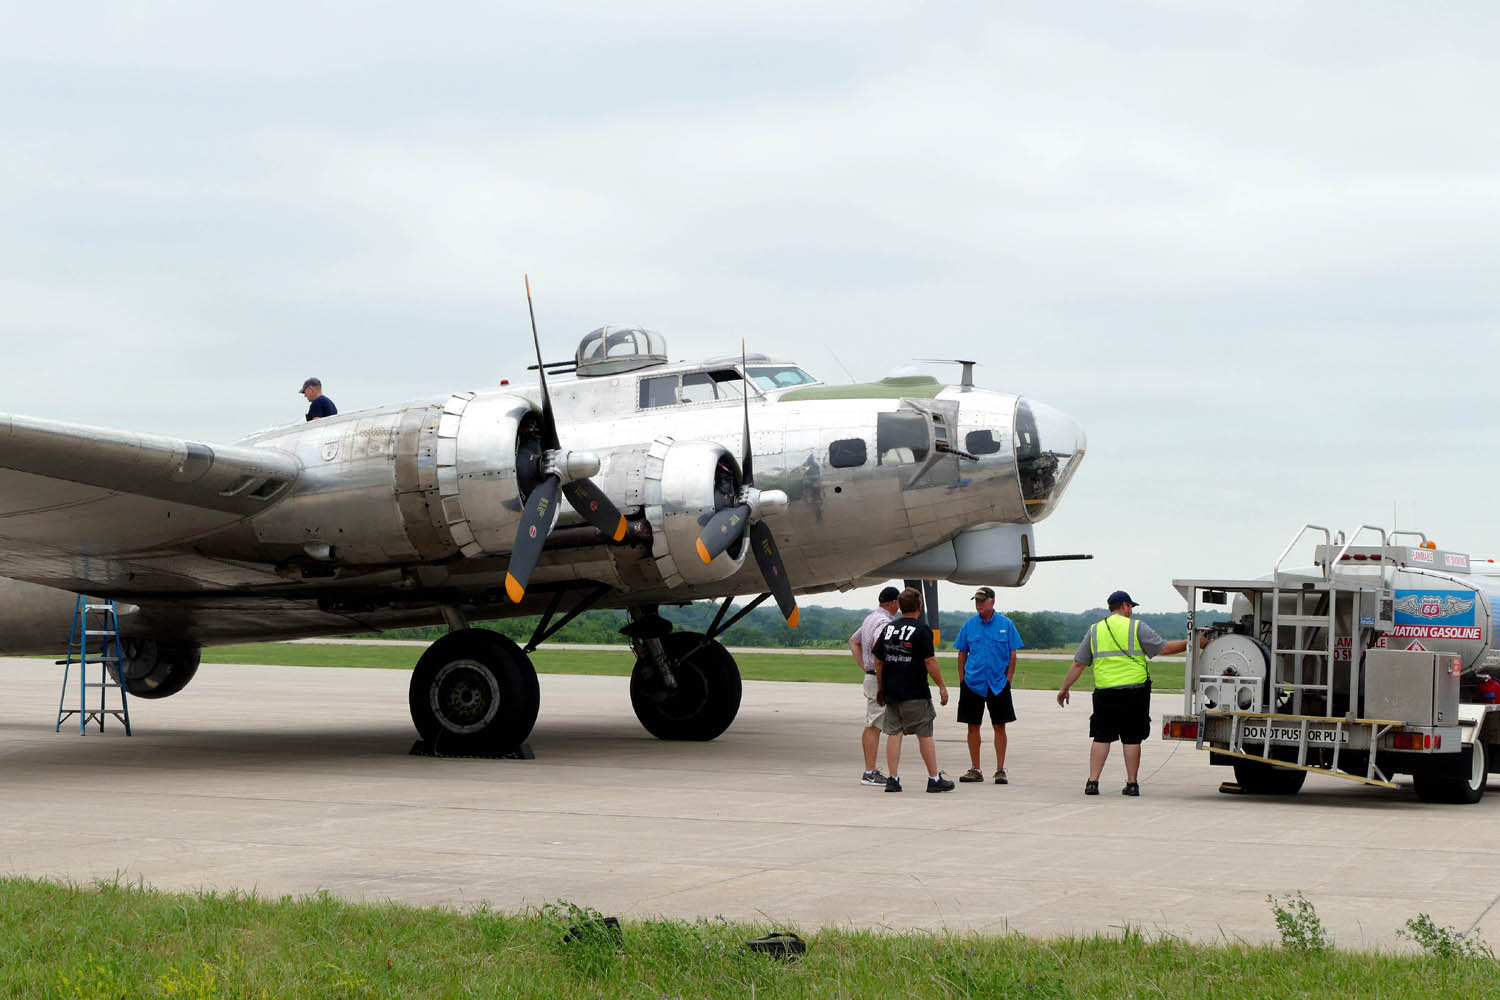 B-17 MADRAS REFUELING AT JABARA DURING EAA TOUR